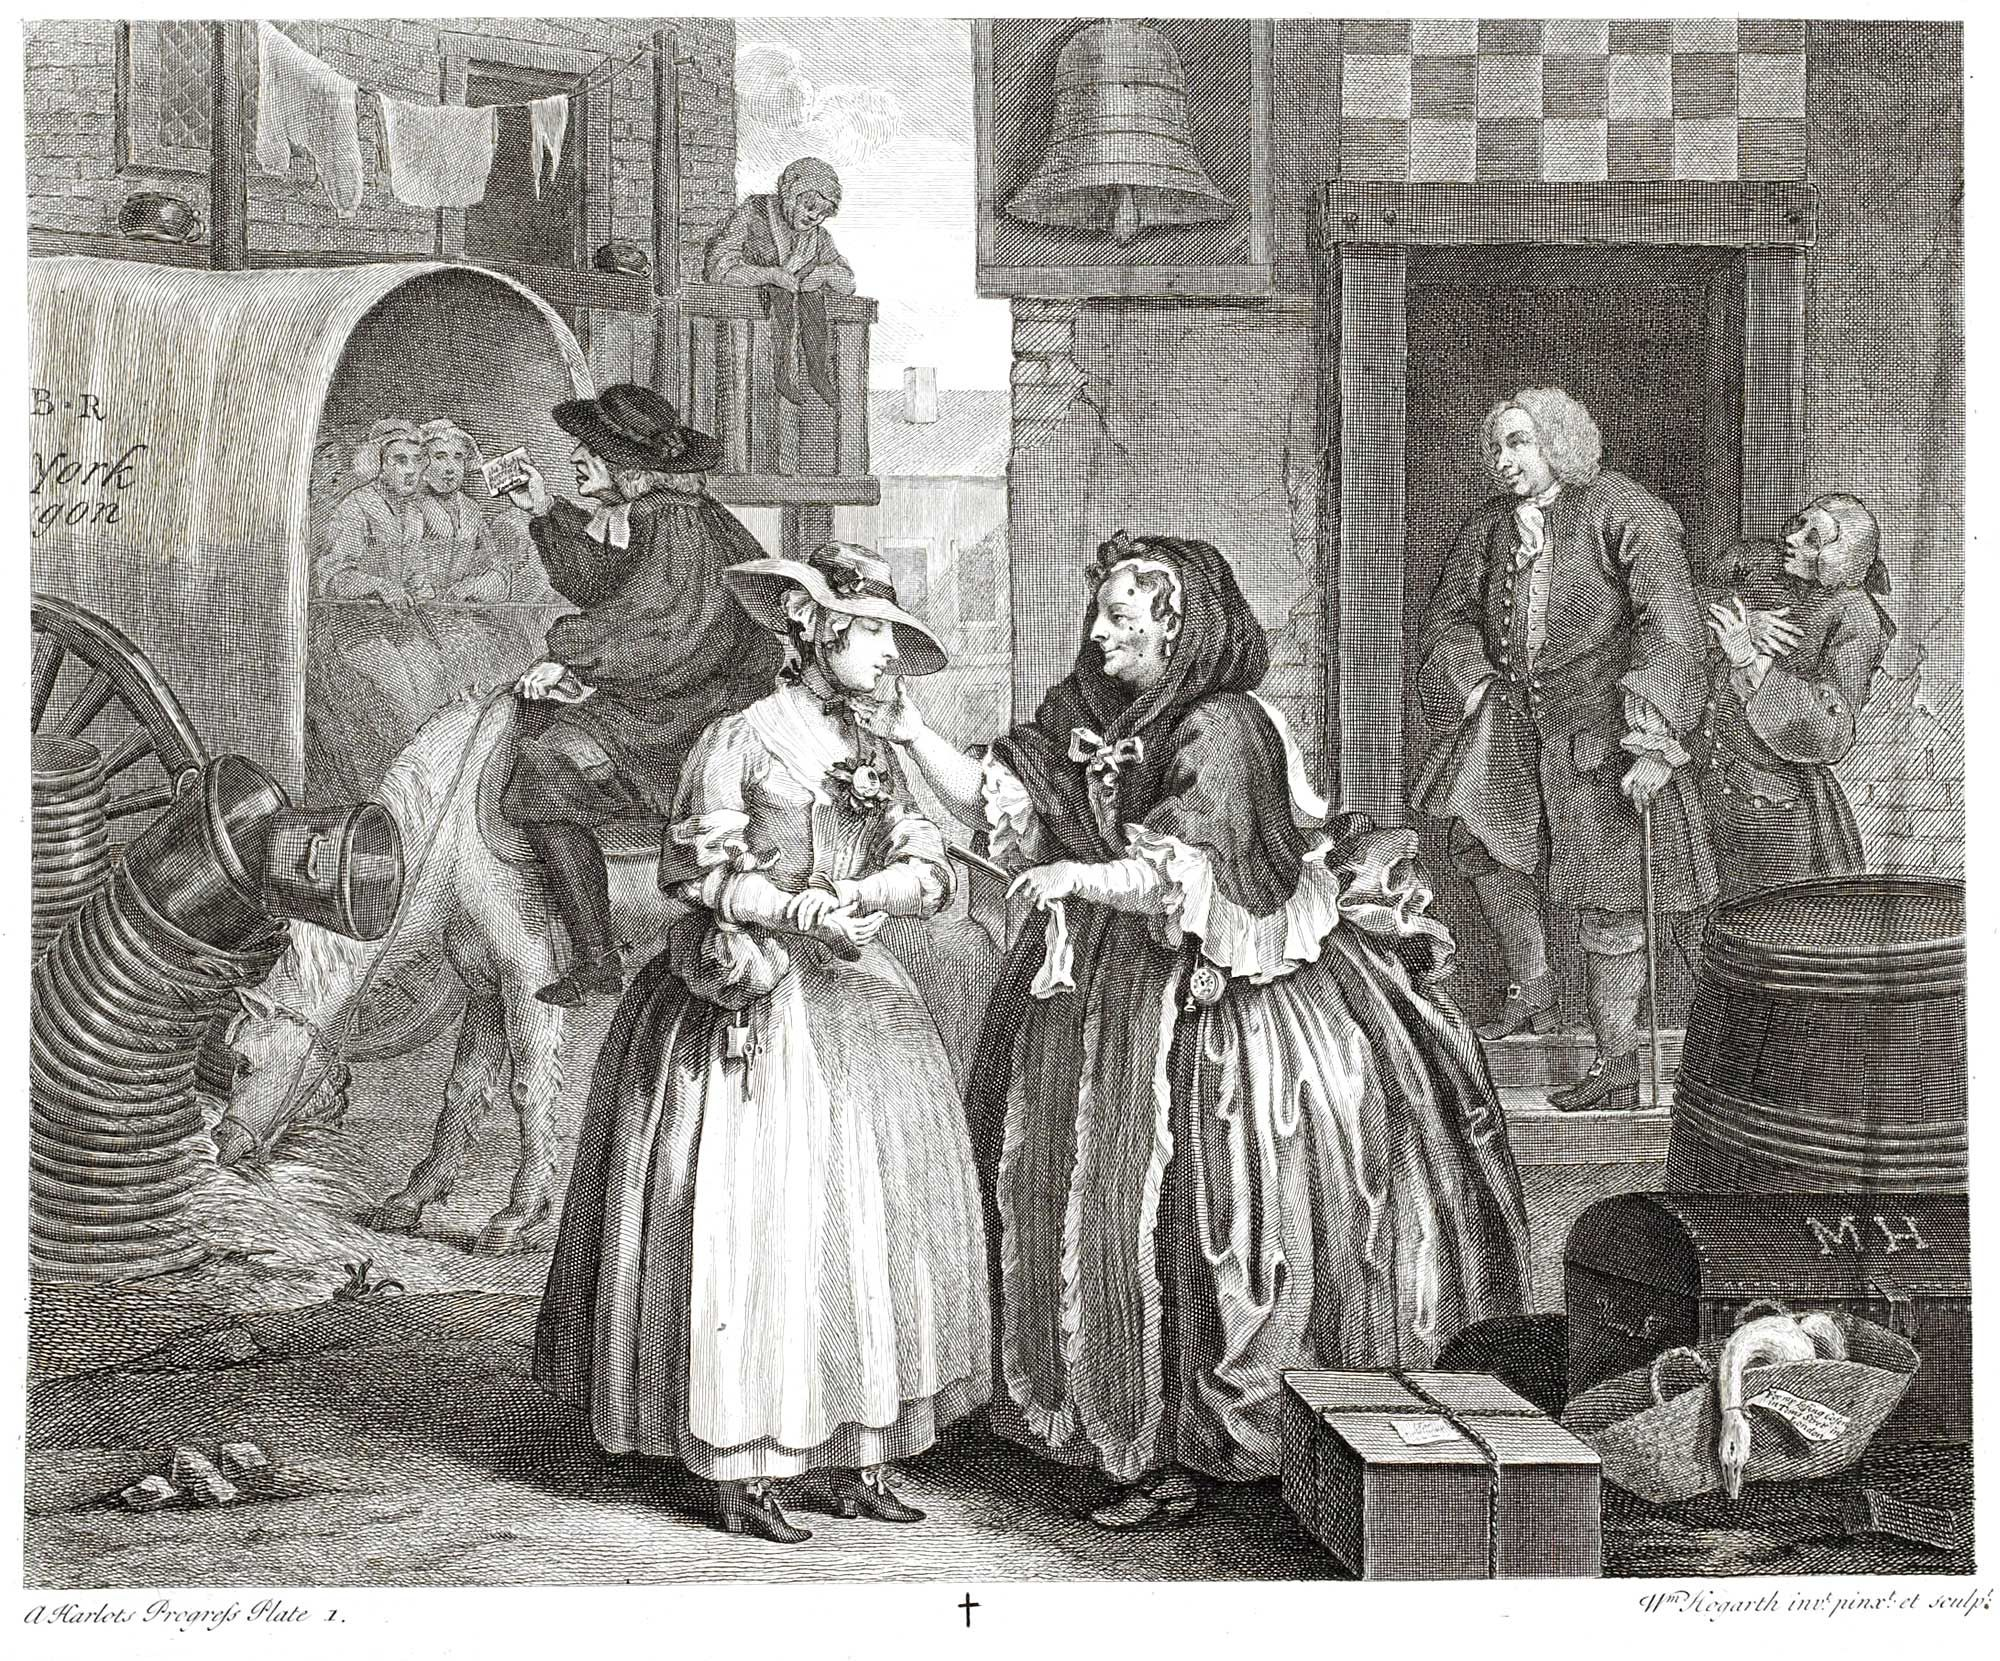 This image is from Hogarth's famous series of prints the Harlot's Progress, which tells the story of a woman coming to London from the country, taking up prostitution, being sent to prison and eventually dying of the sexually transmitted disease, syphilis.  Dozens of infamous bawdy-houses could be found up narrow alleyways  side streets, and even ships moored on the Thames were converted into brothels.